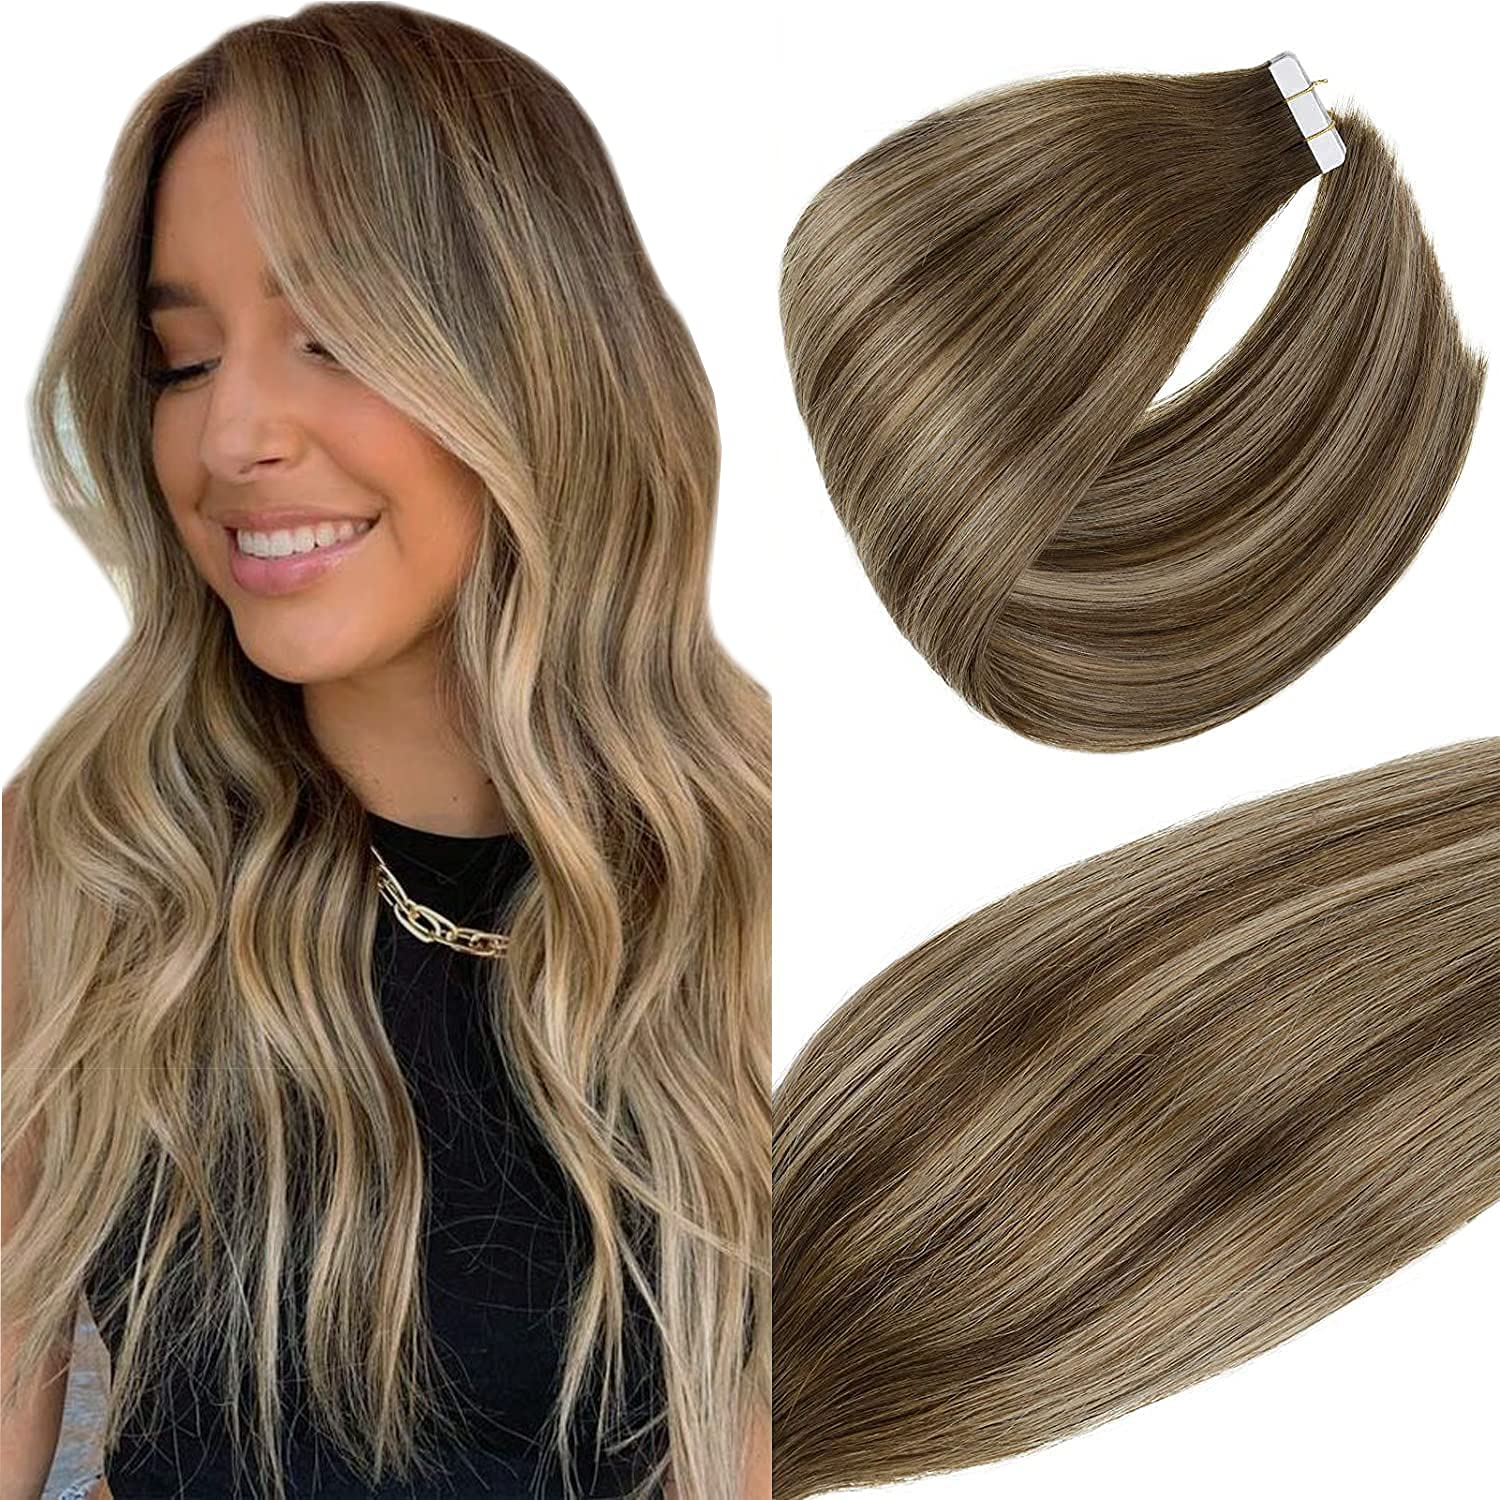 Quantity limited Oakland Mall Vivien Brown Human Hair Extensions in F Balayage Tape Dark